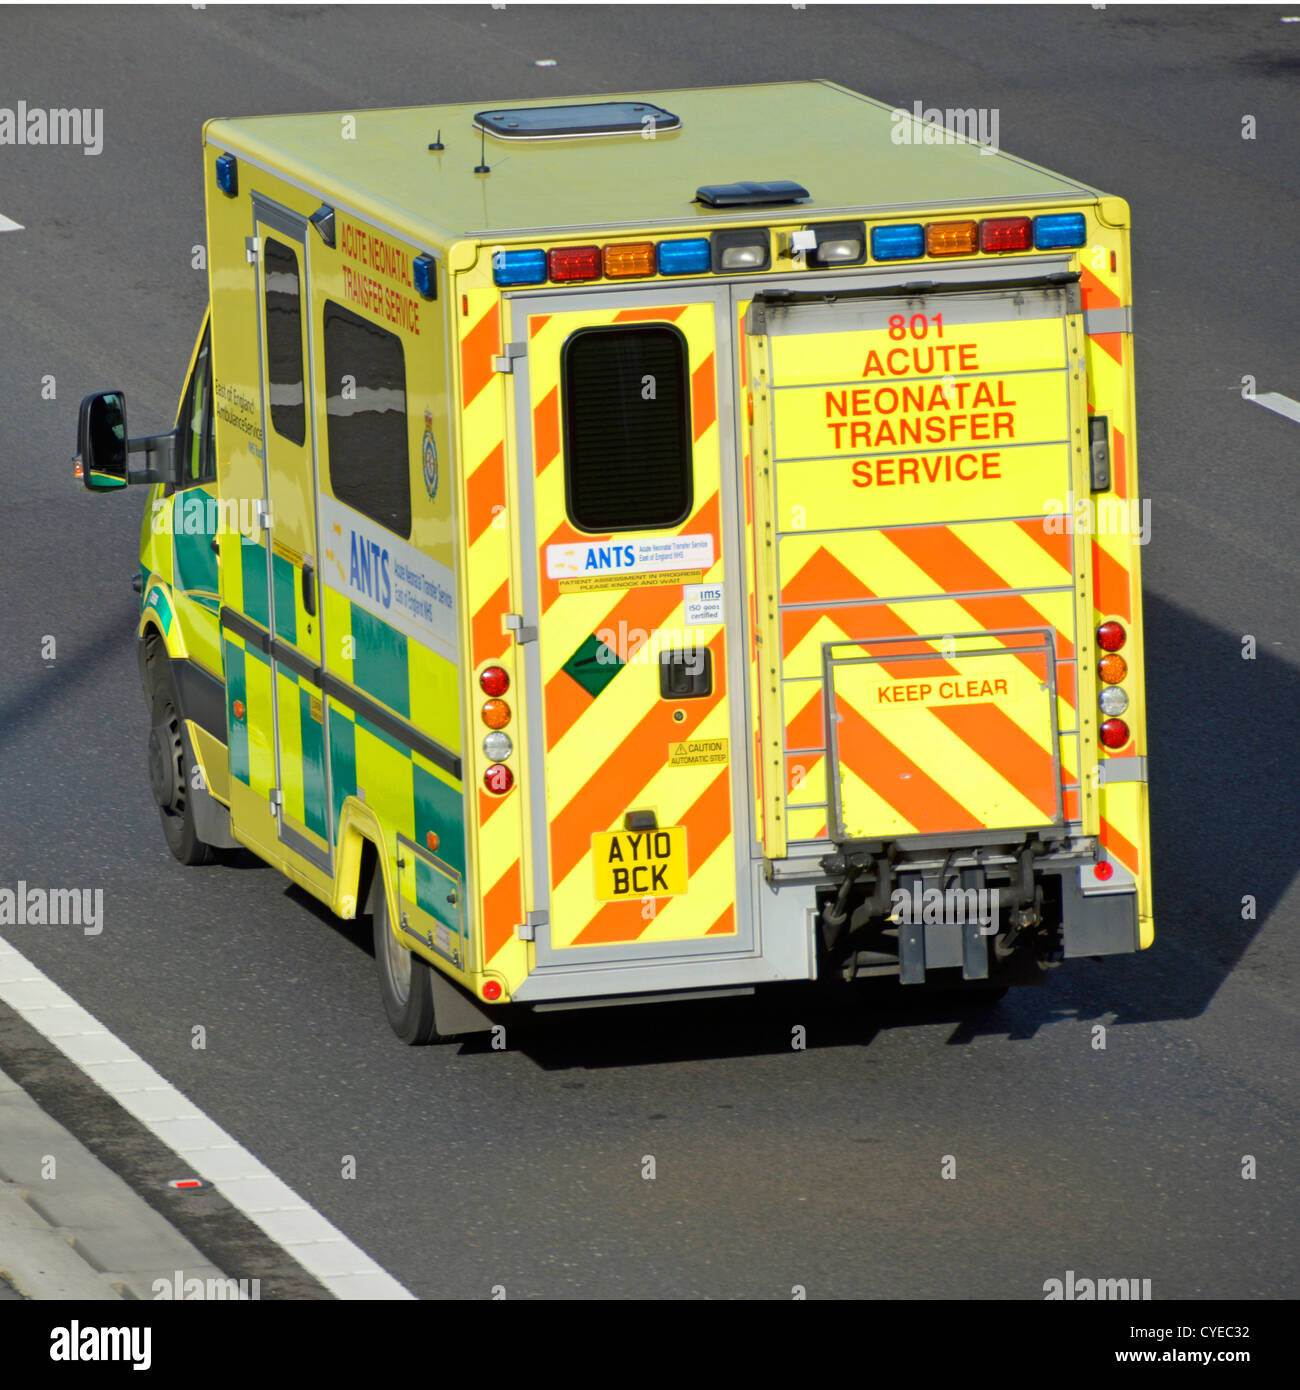 Back view of drop down tailgate loading ramp on Acute Neonatal NHS ambulance driving along M25 motorway Essex England - Stock Image